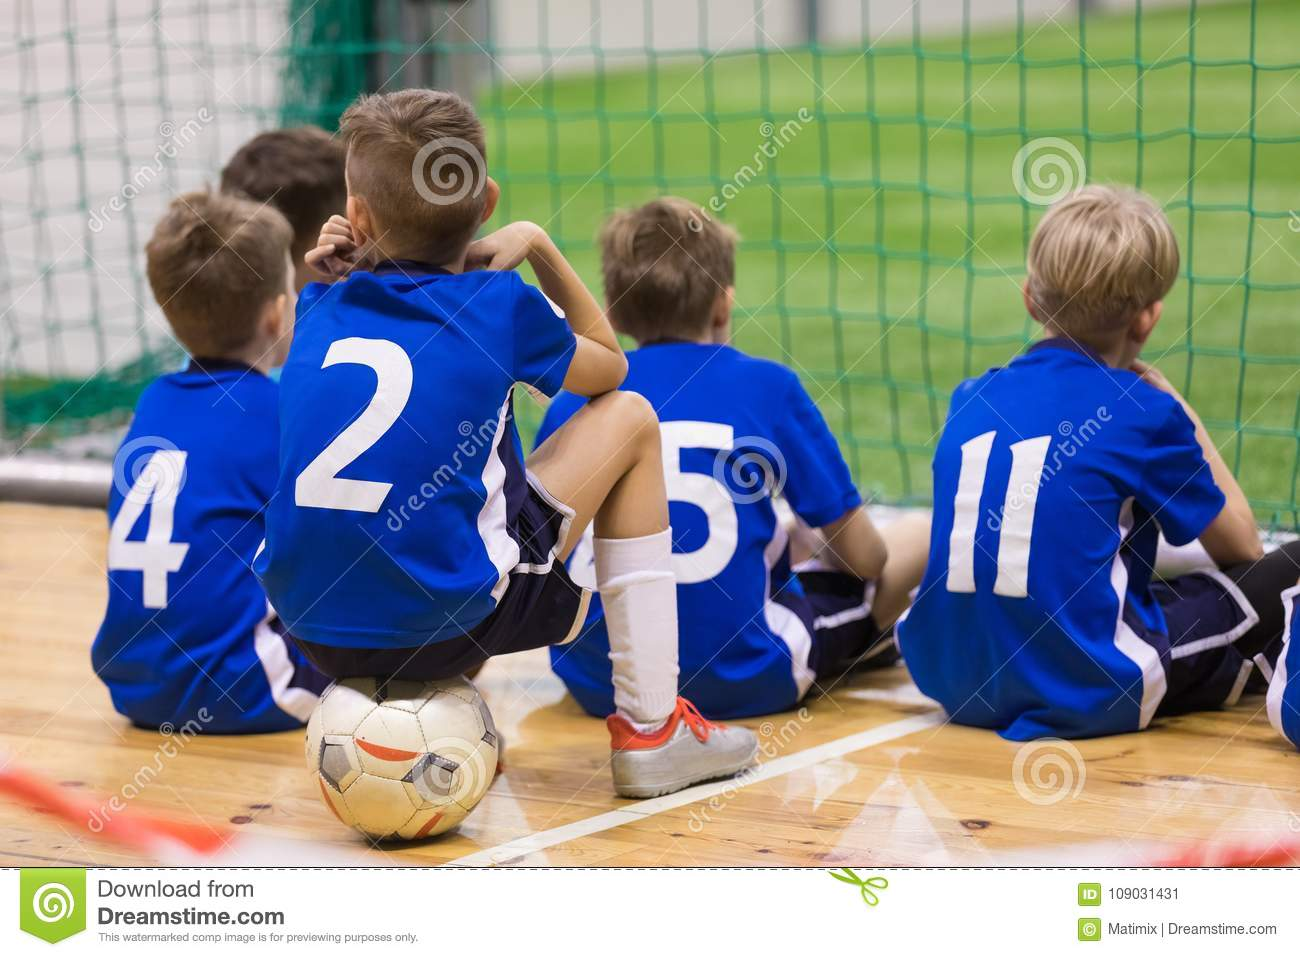 a3a47a973 Children futsal team. Group of young indoor soccer players sitting together.